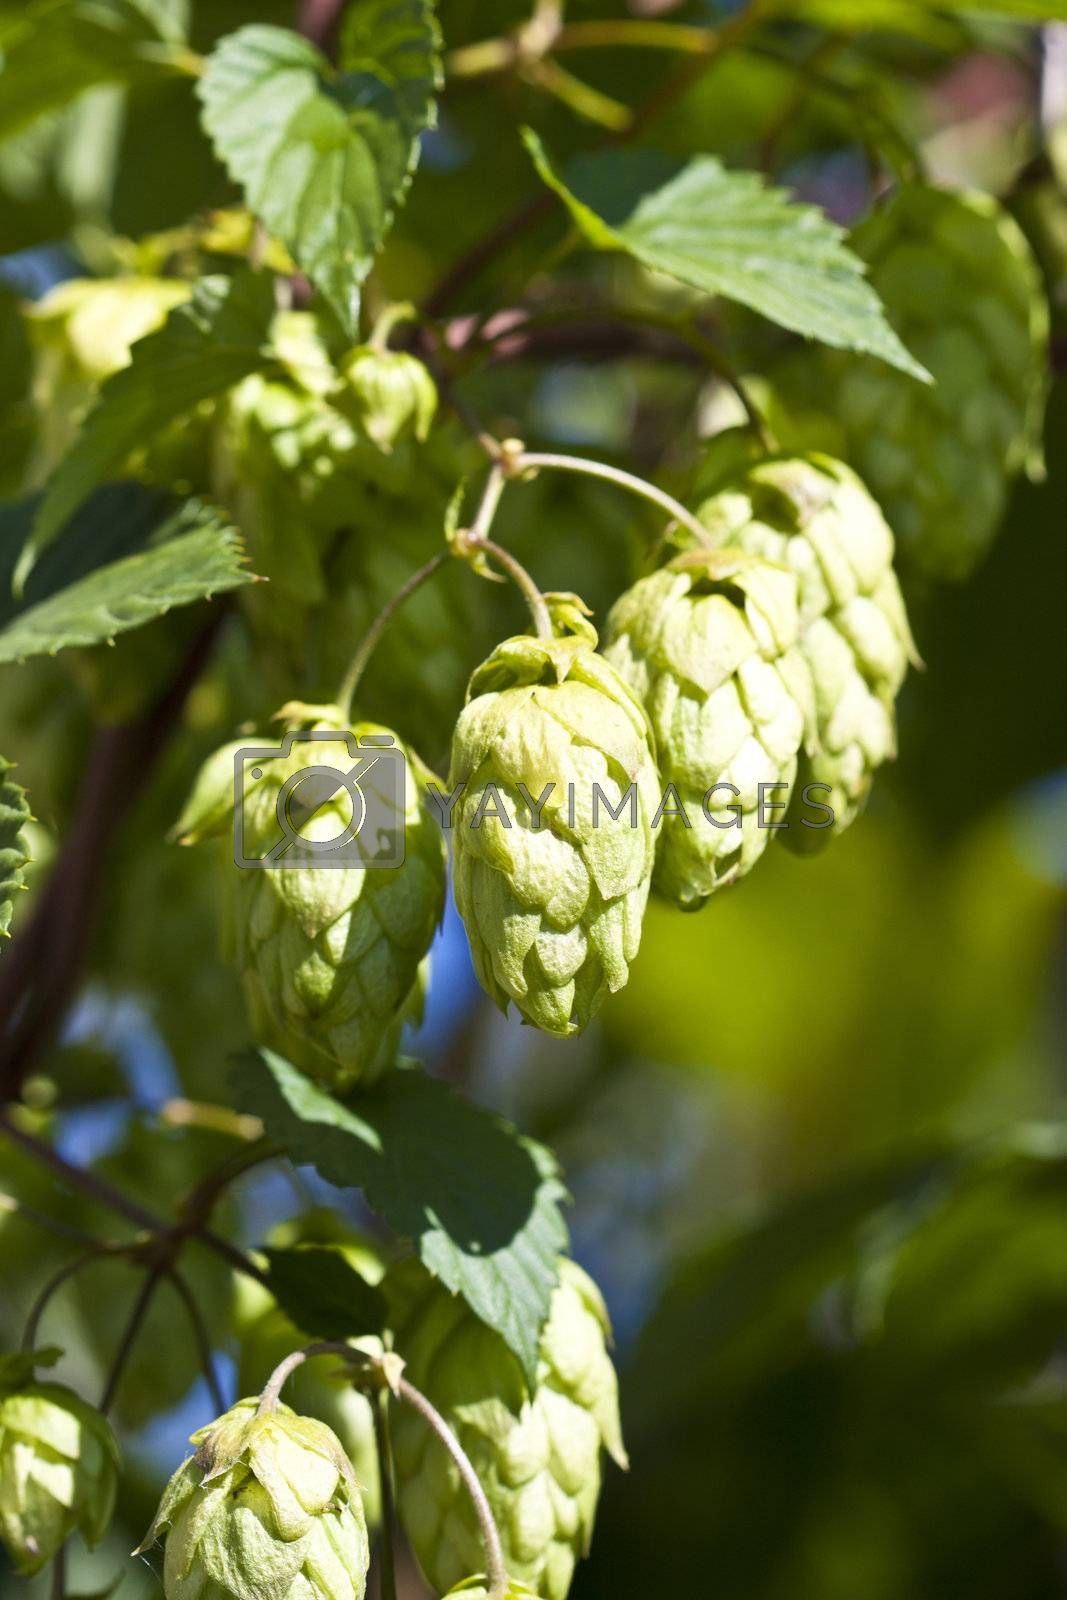 hand hops on the green bush in the garden